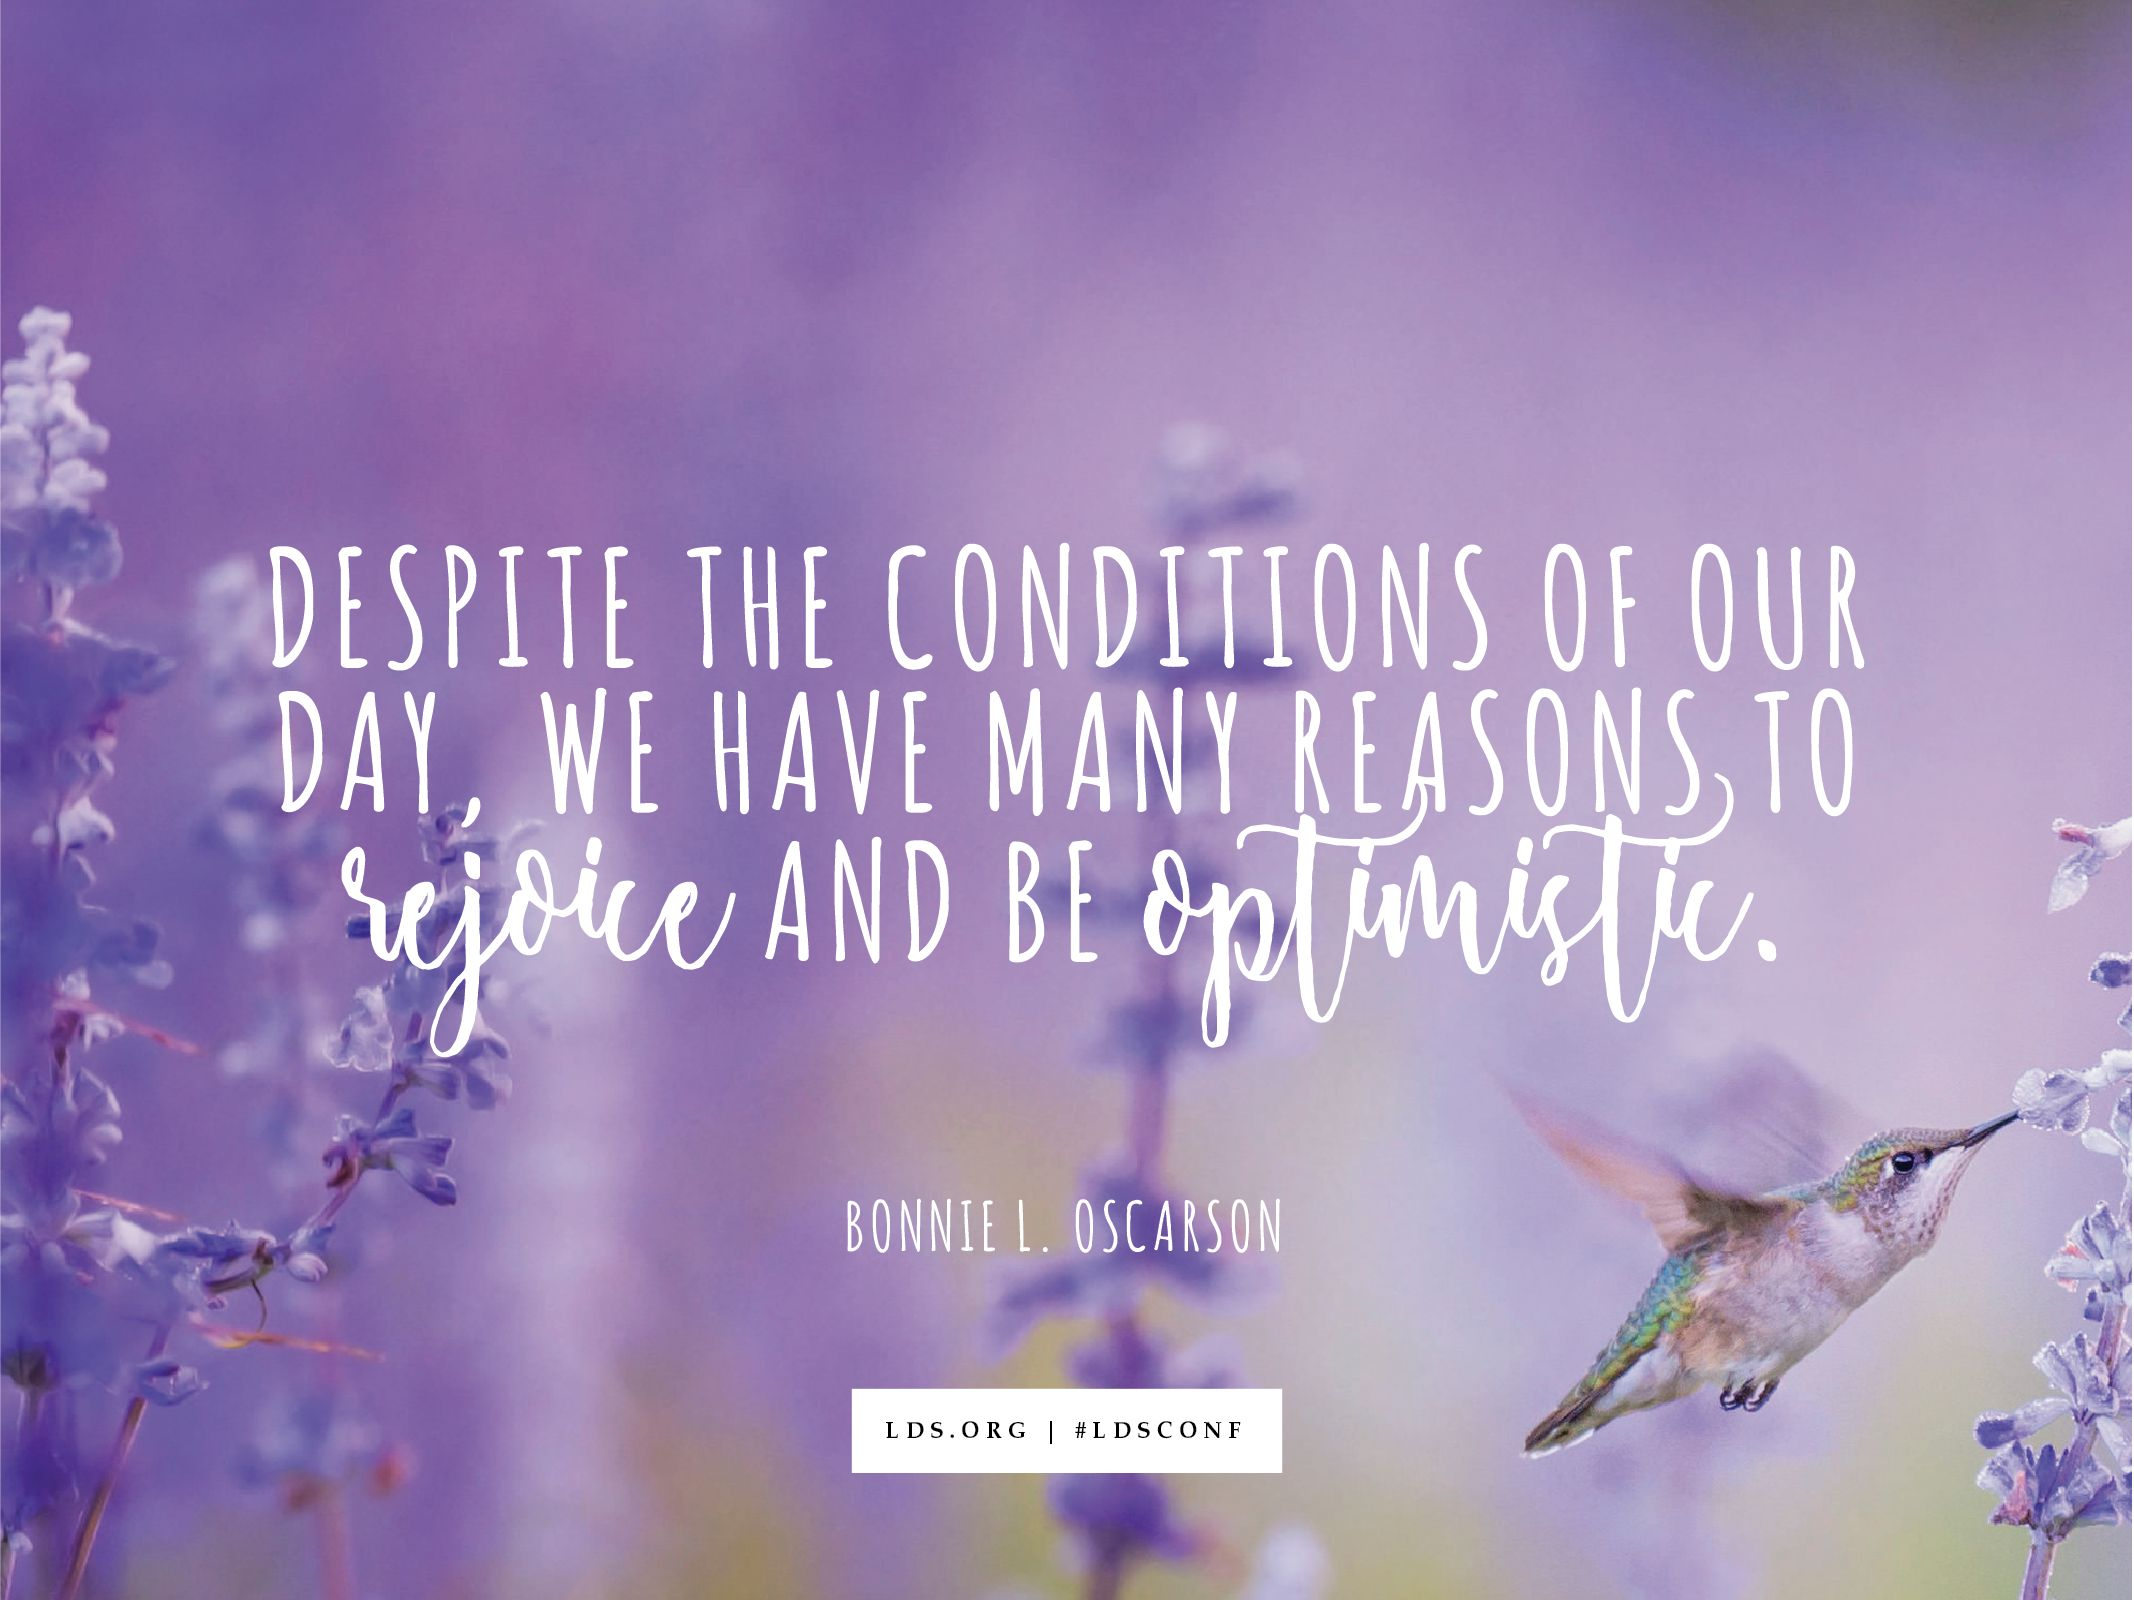 Optimistic Quotes Despite The Conditions Of Our Day We Have Many Reasons To Rejoice